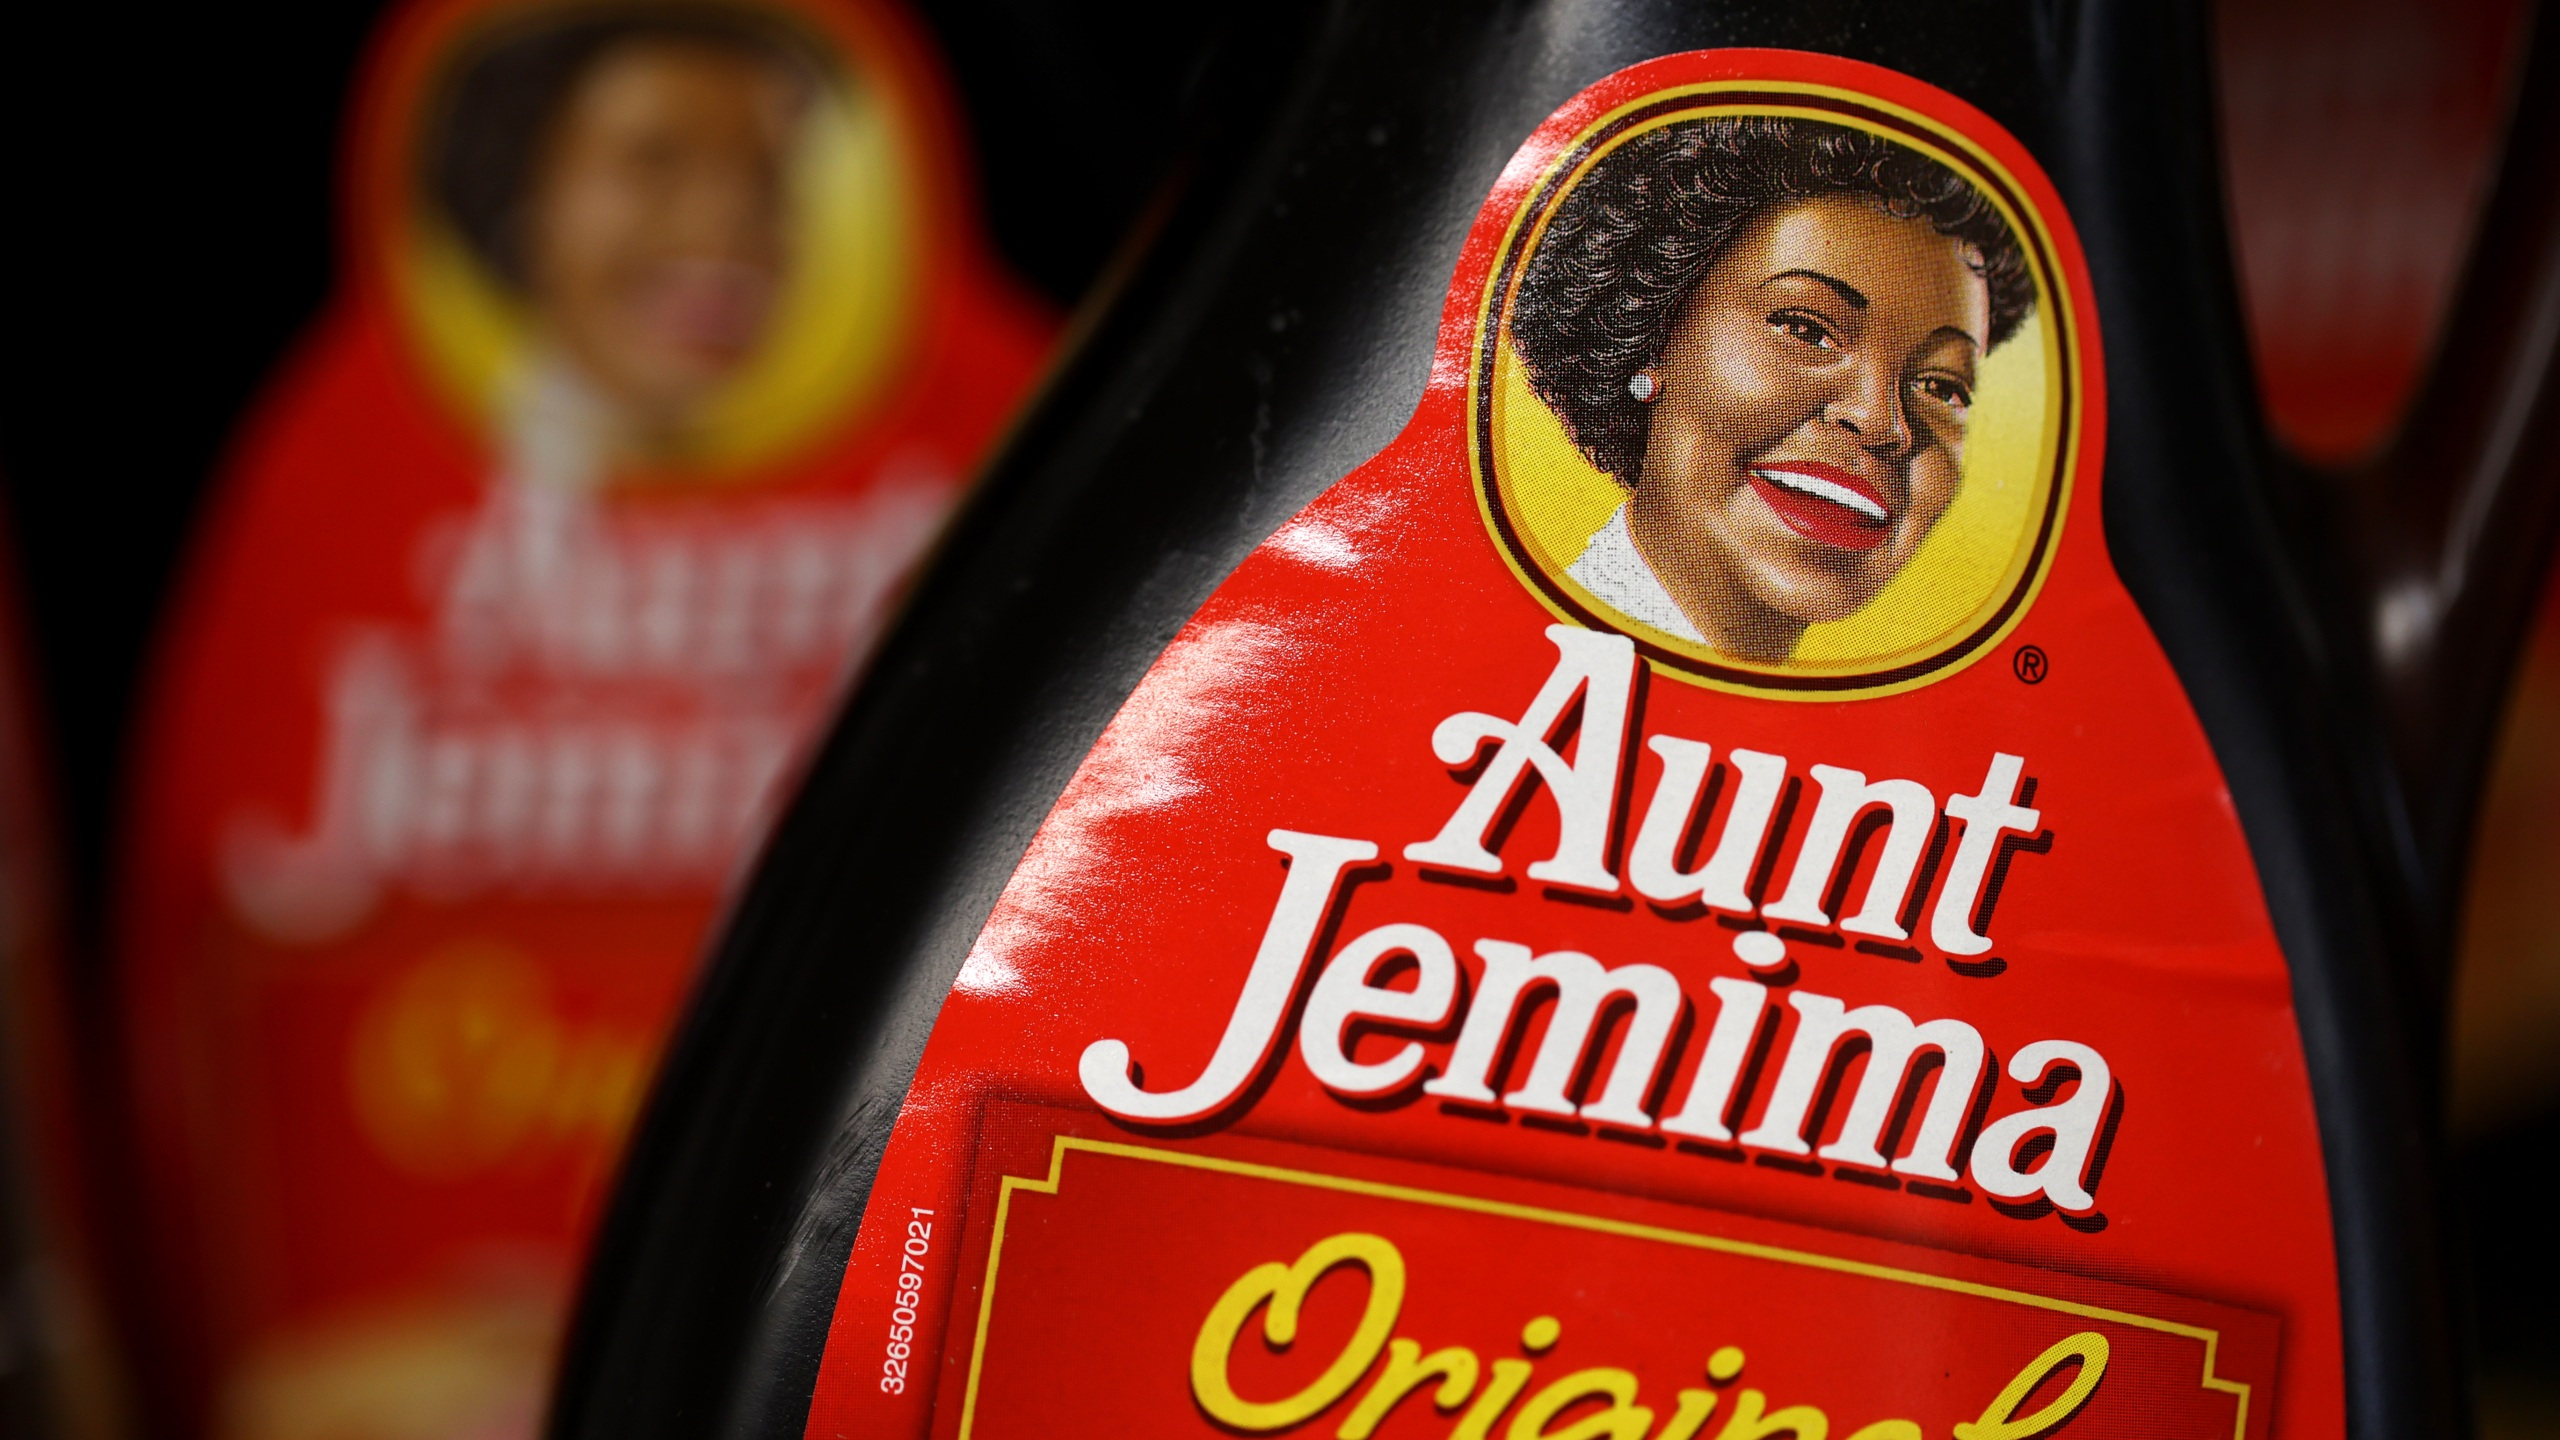 Aunt Jemima brand gets a new name: Pearl Milling Company   WHNT.com